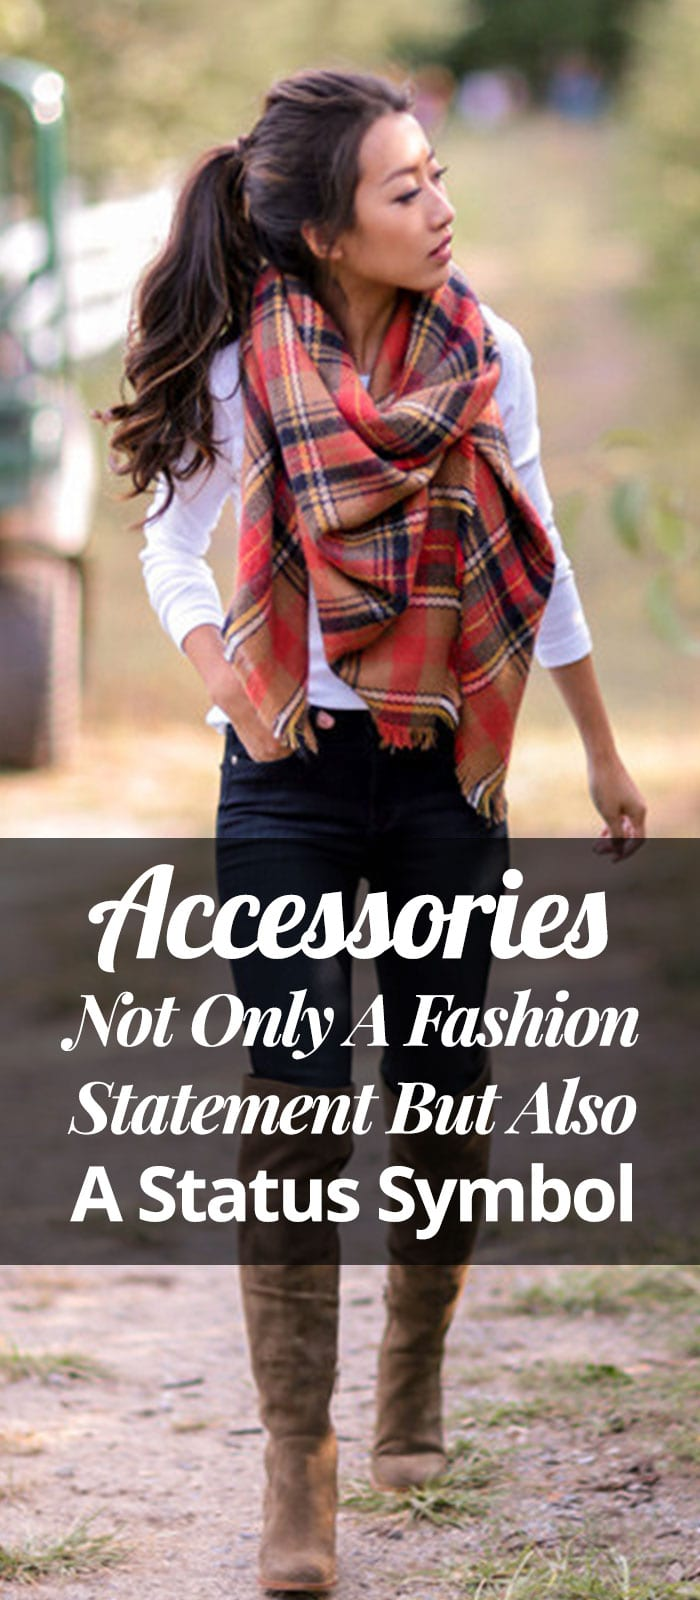 Accessories- Not Only A Fashion Statement But Also A Status Symbol